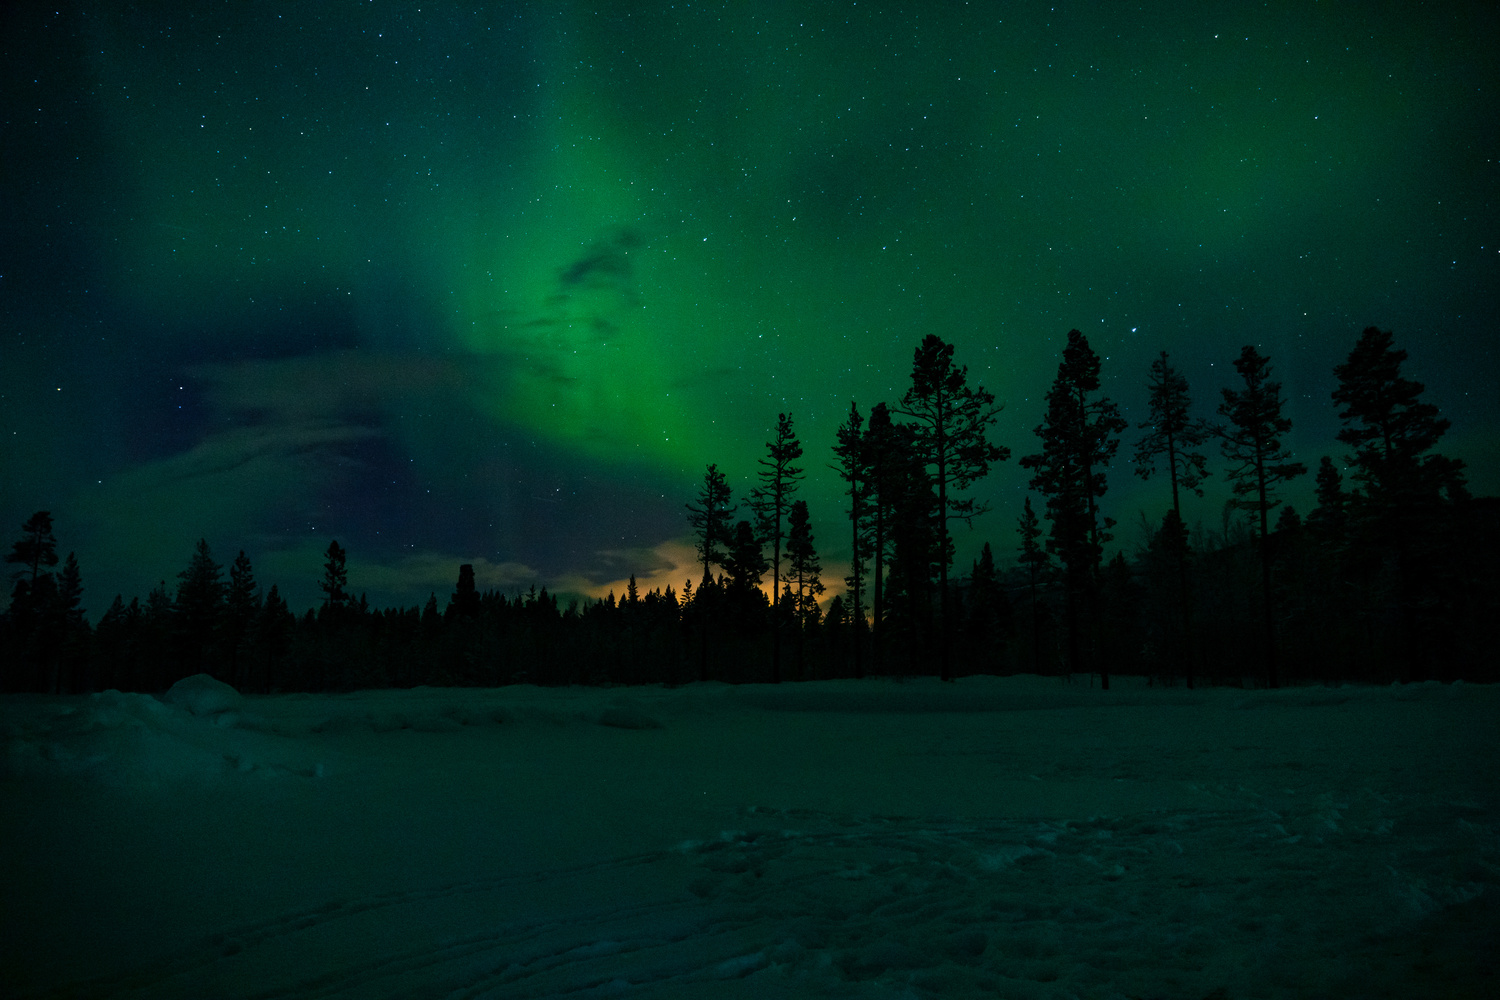 Citylight polution through the forest, accompanied by the magical Aurora Borealis. by Marc B.